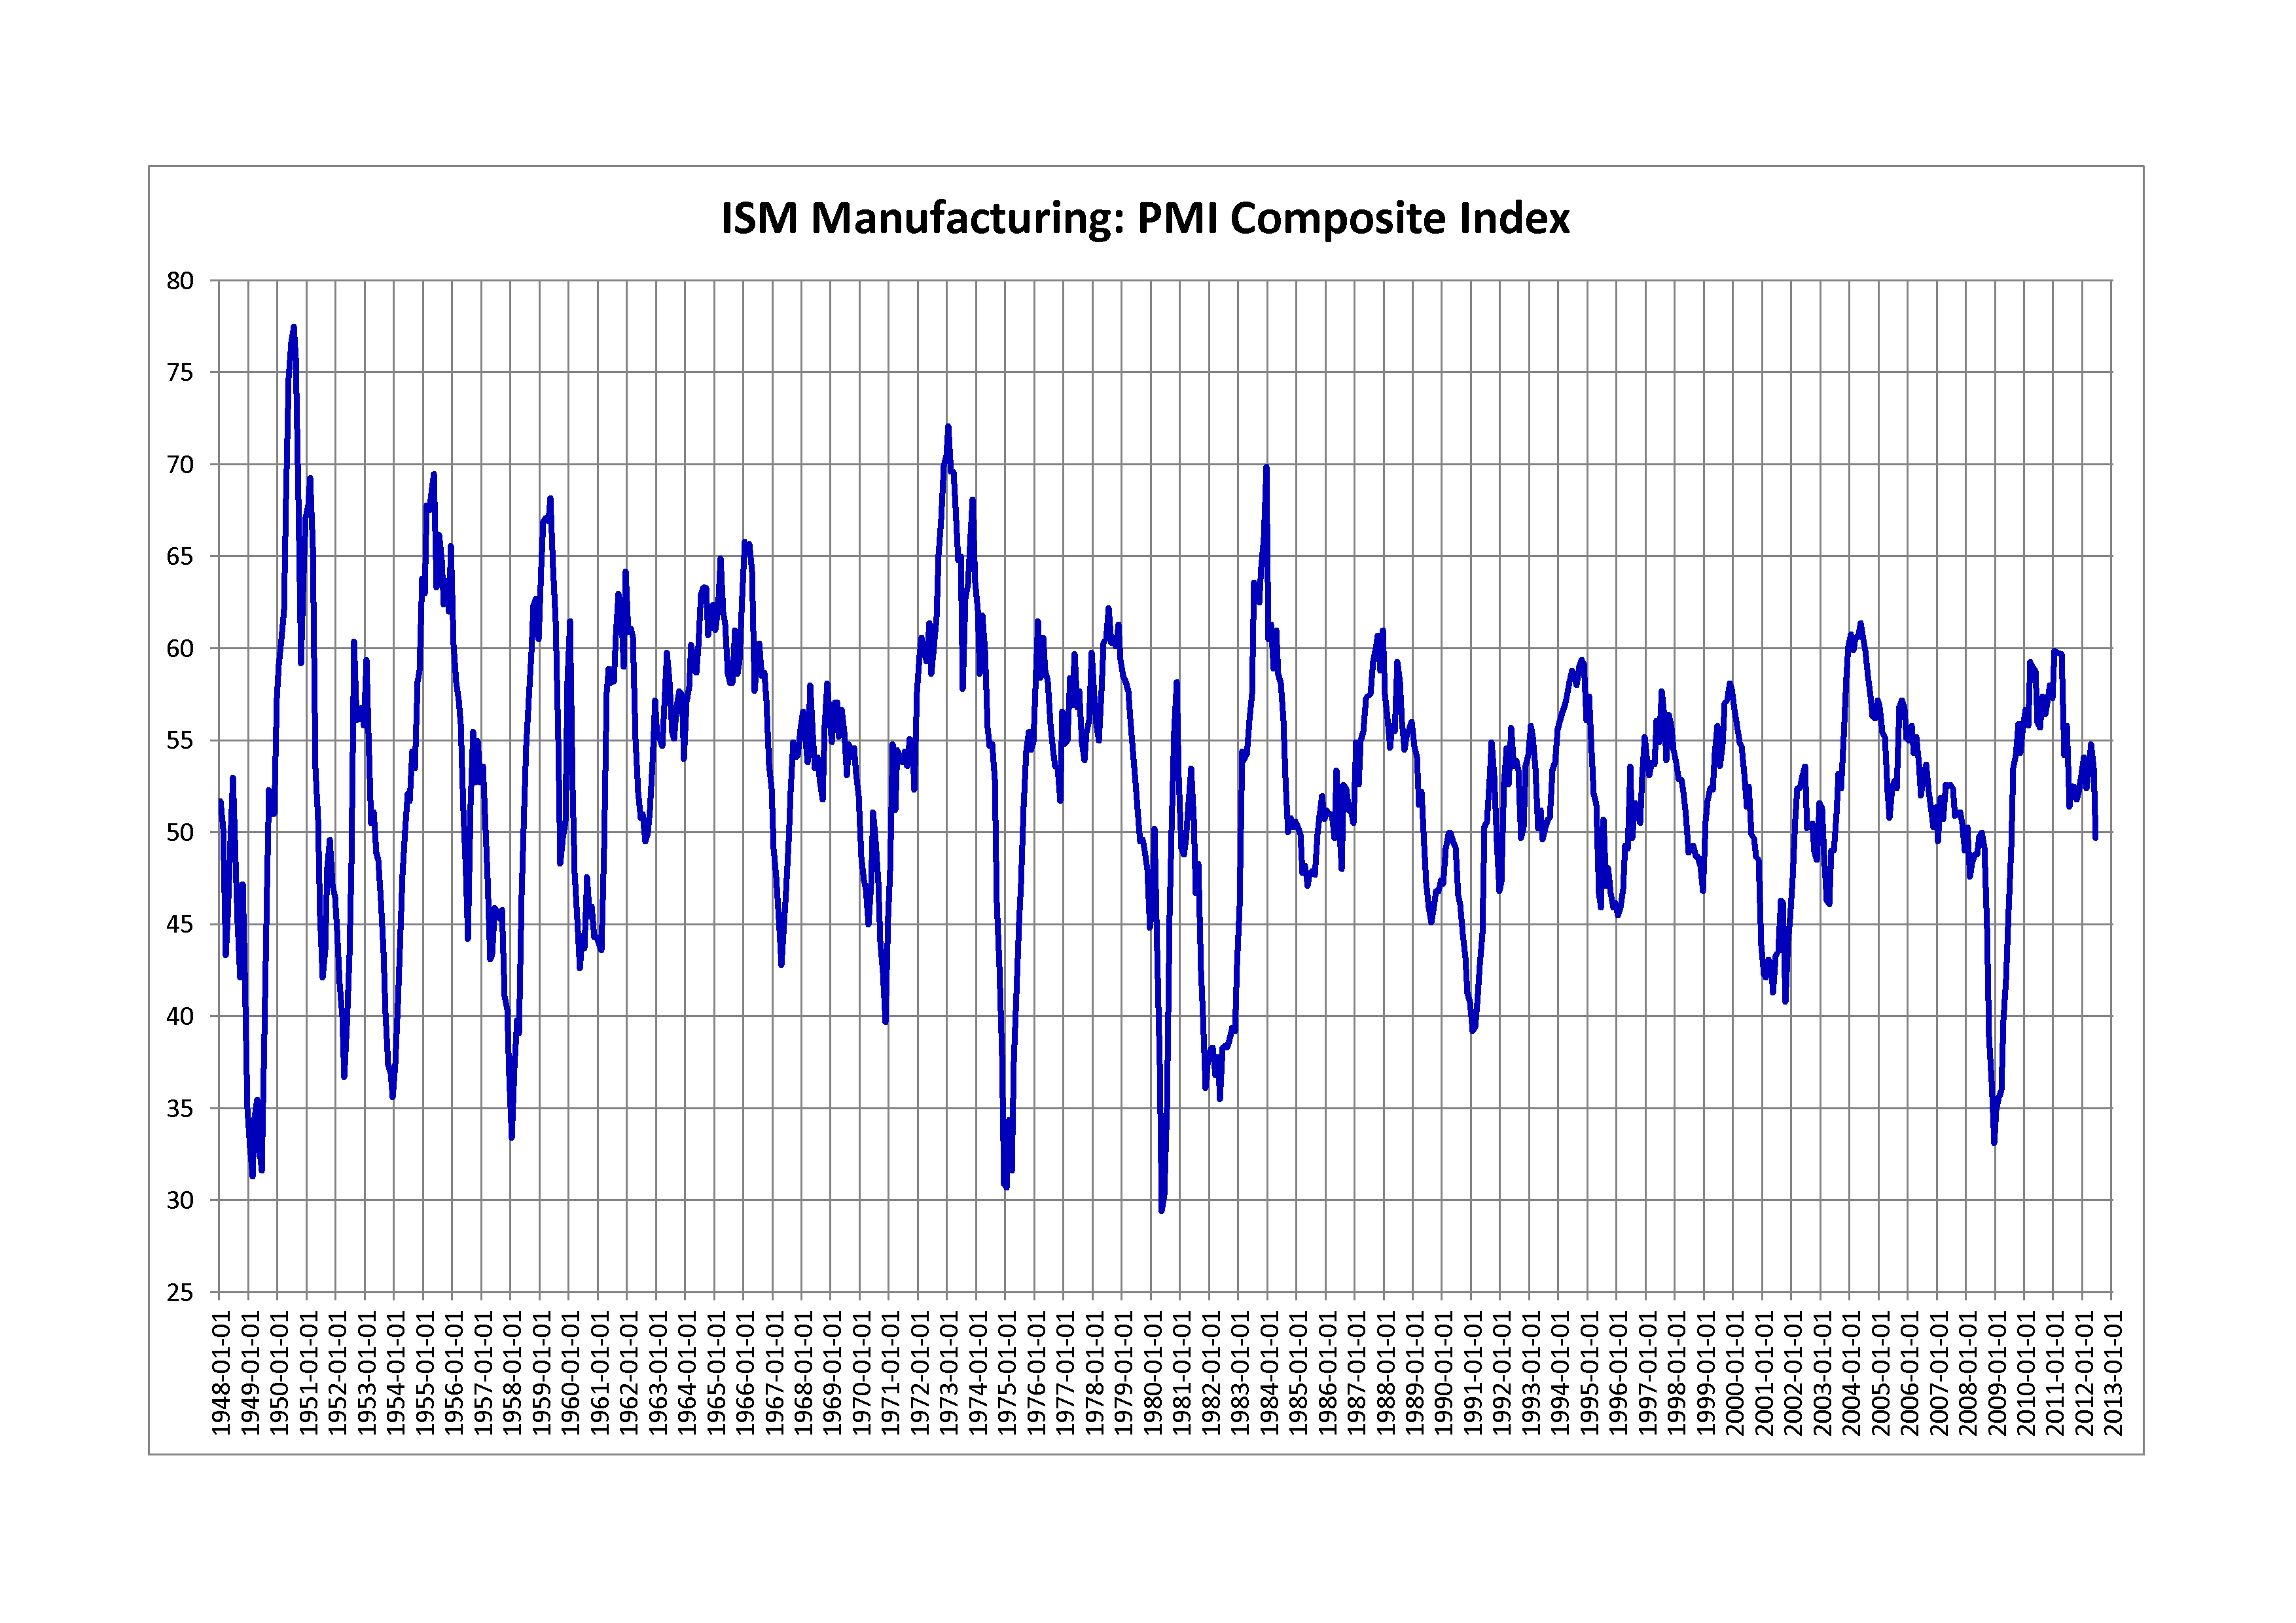 Purchasing Managers' Index - Wikipedia